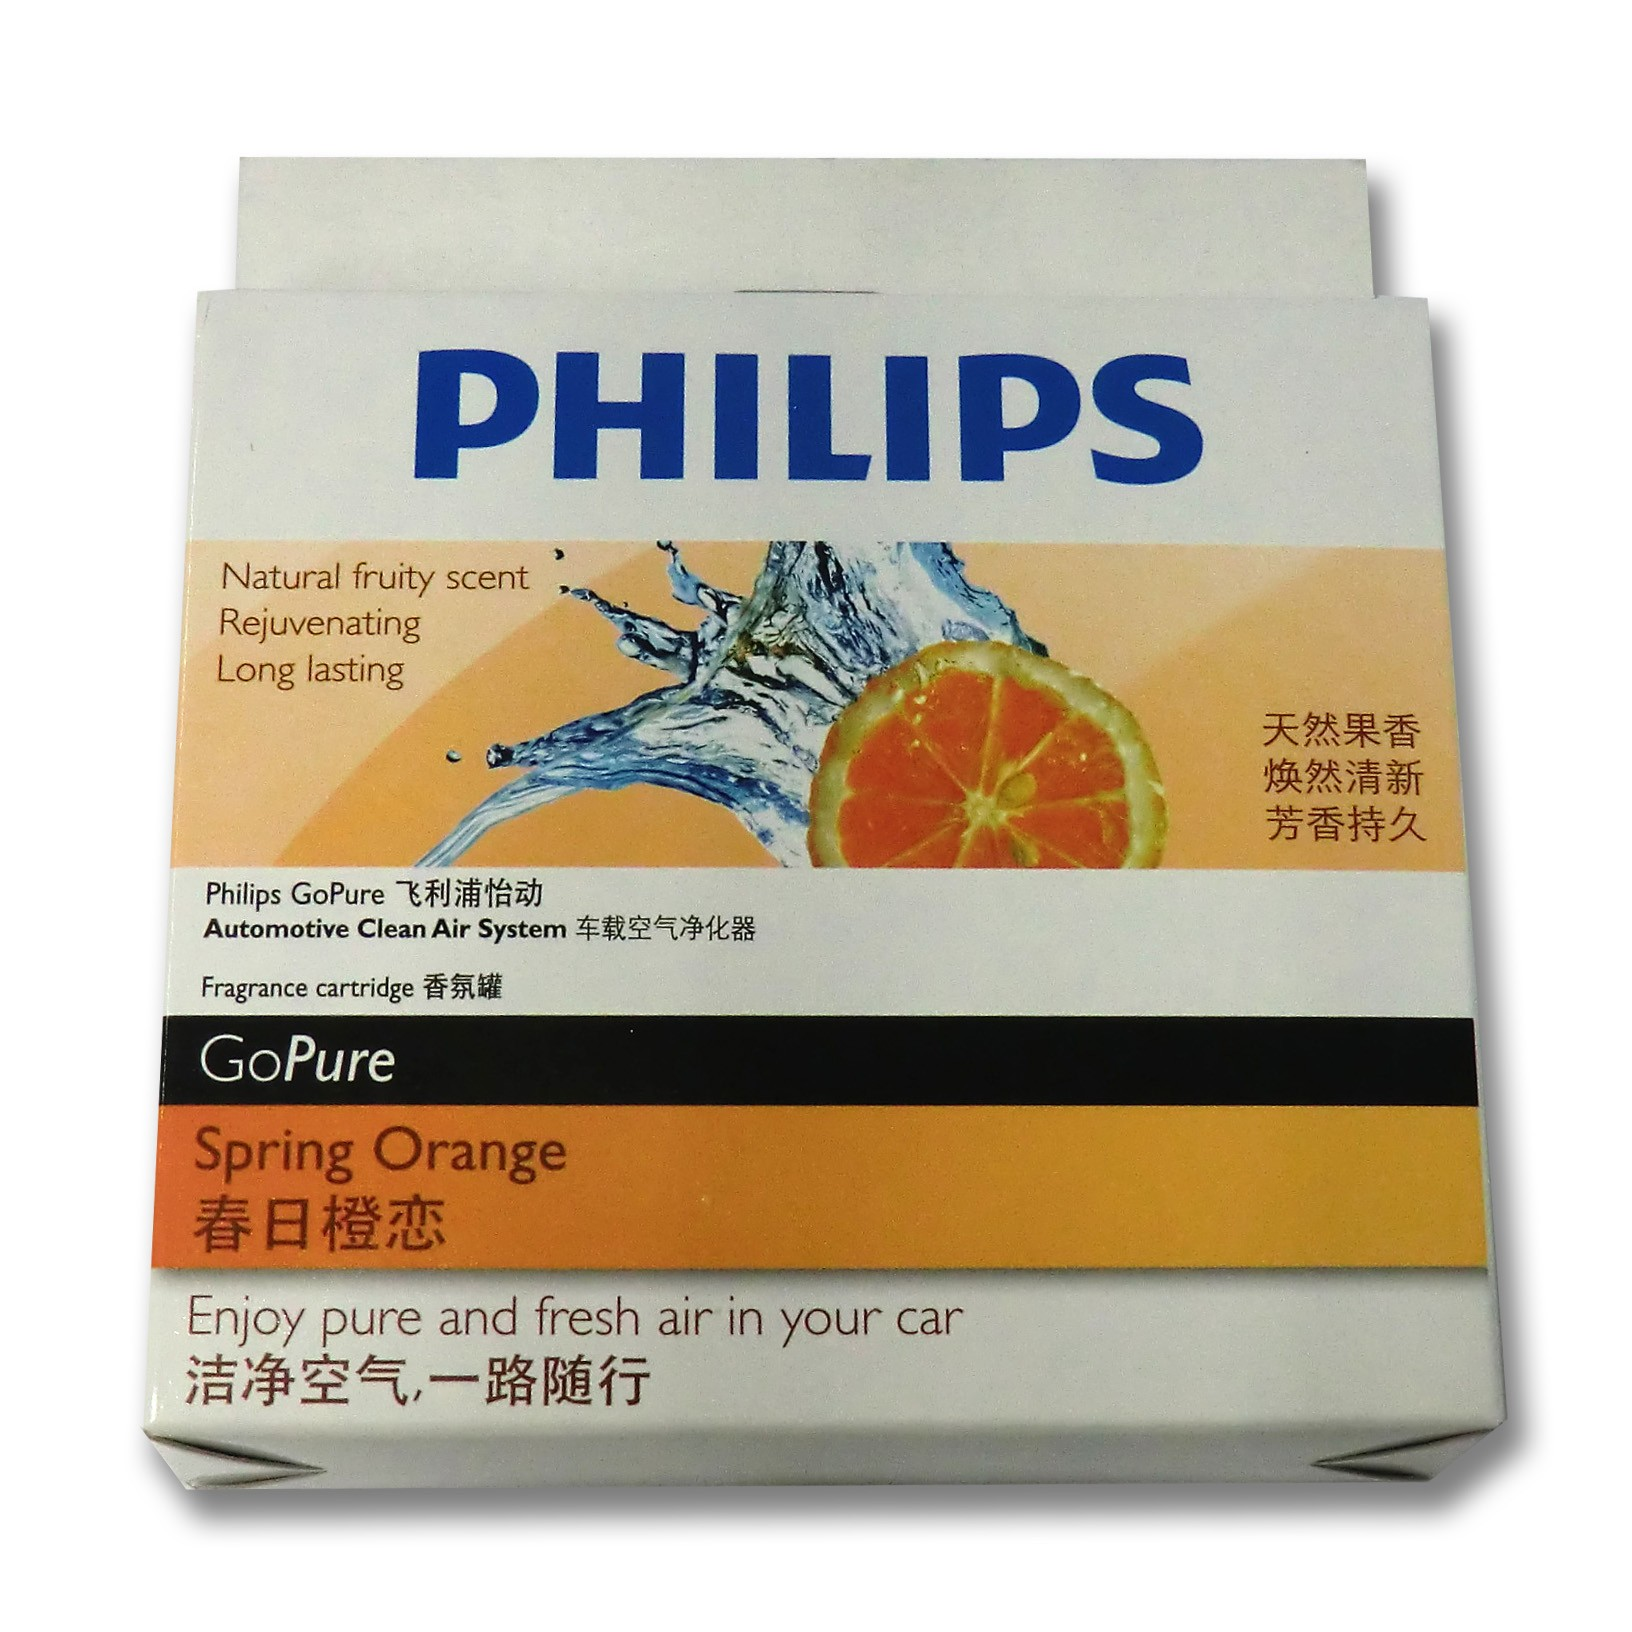 Philips Spring Orange Fragrance Cartridge For GoPure2 Automotive Air Purifier